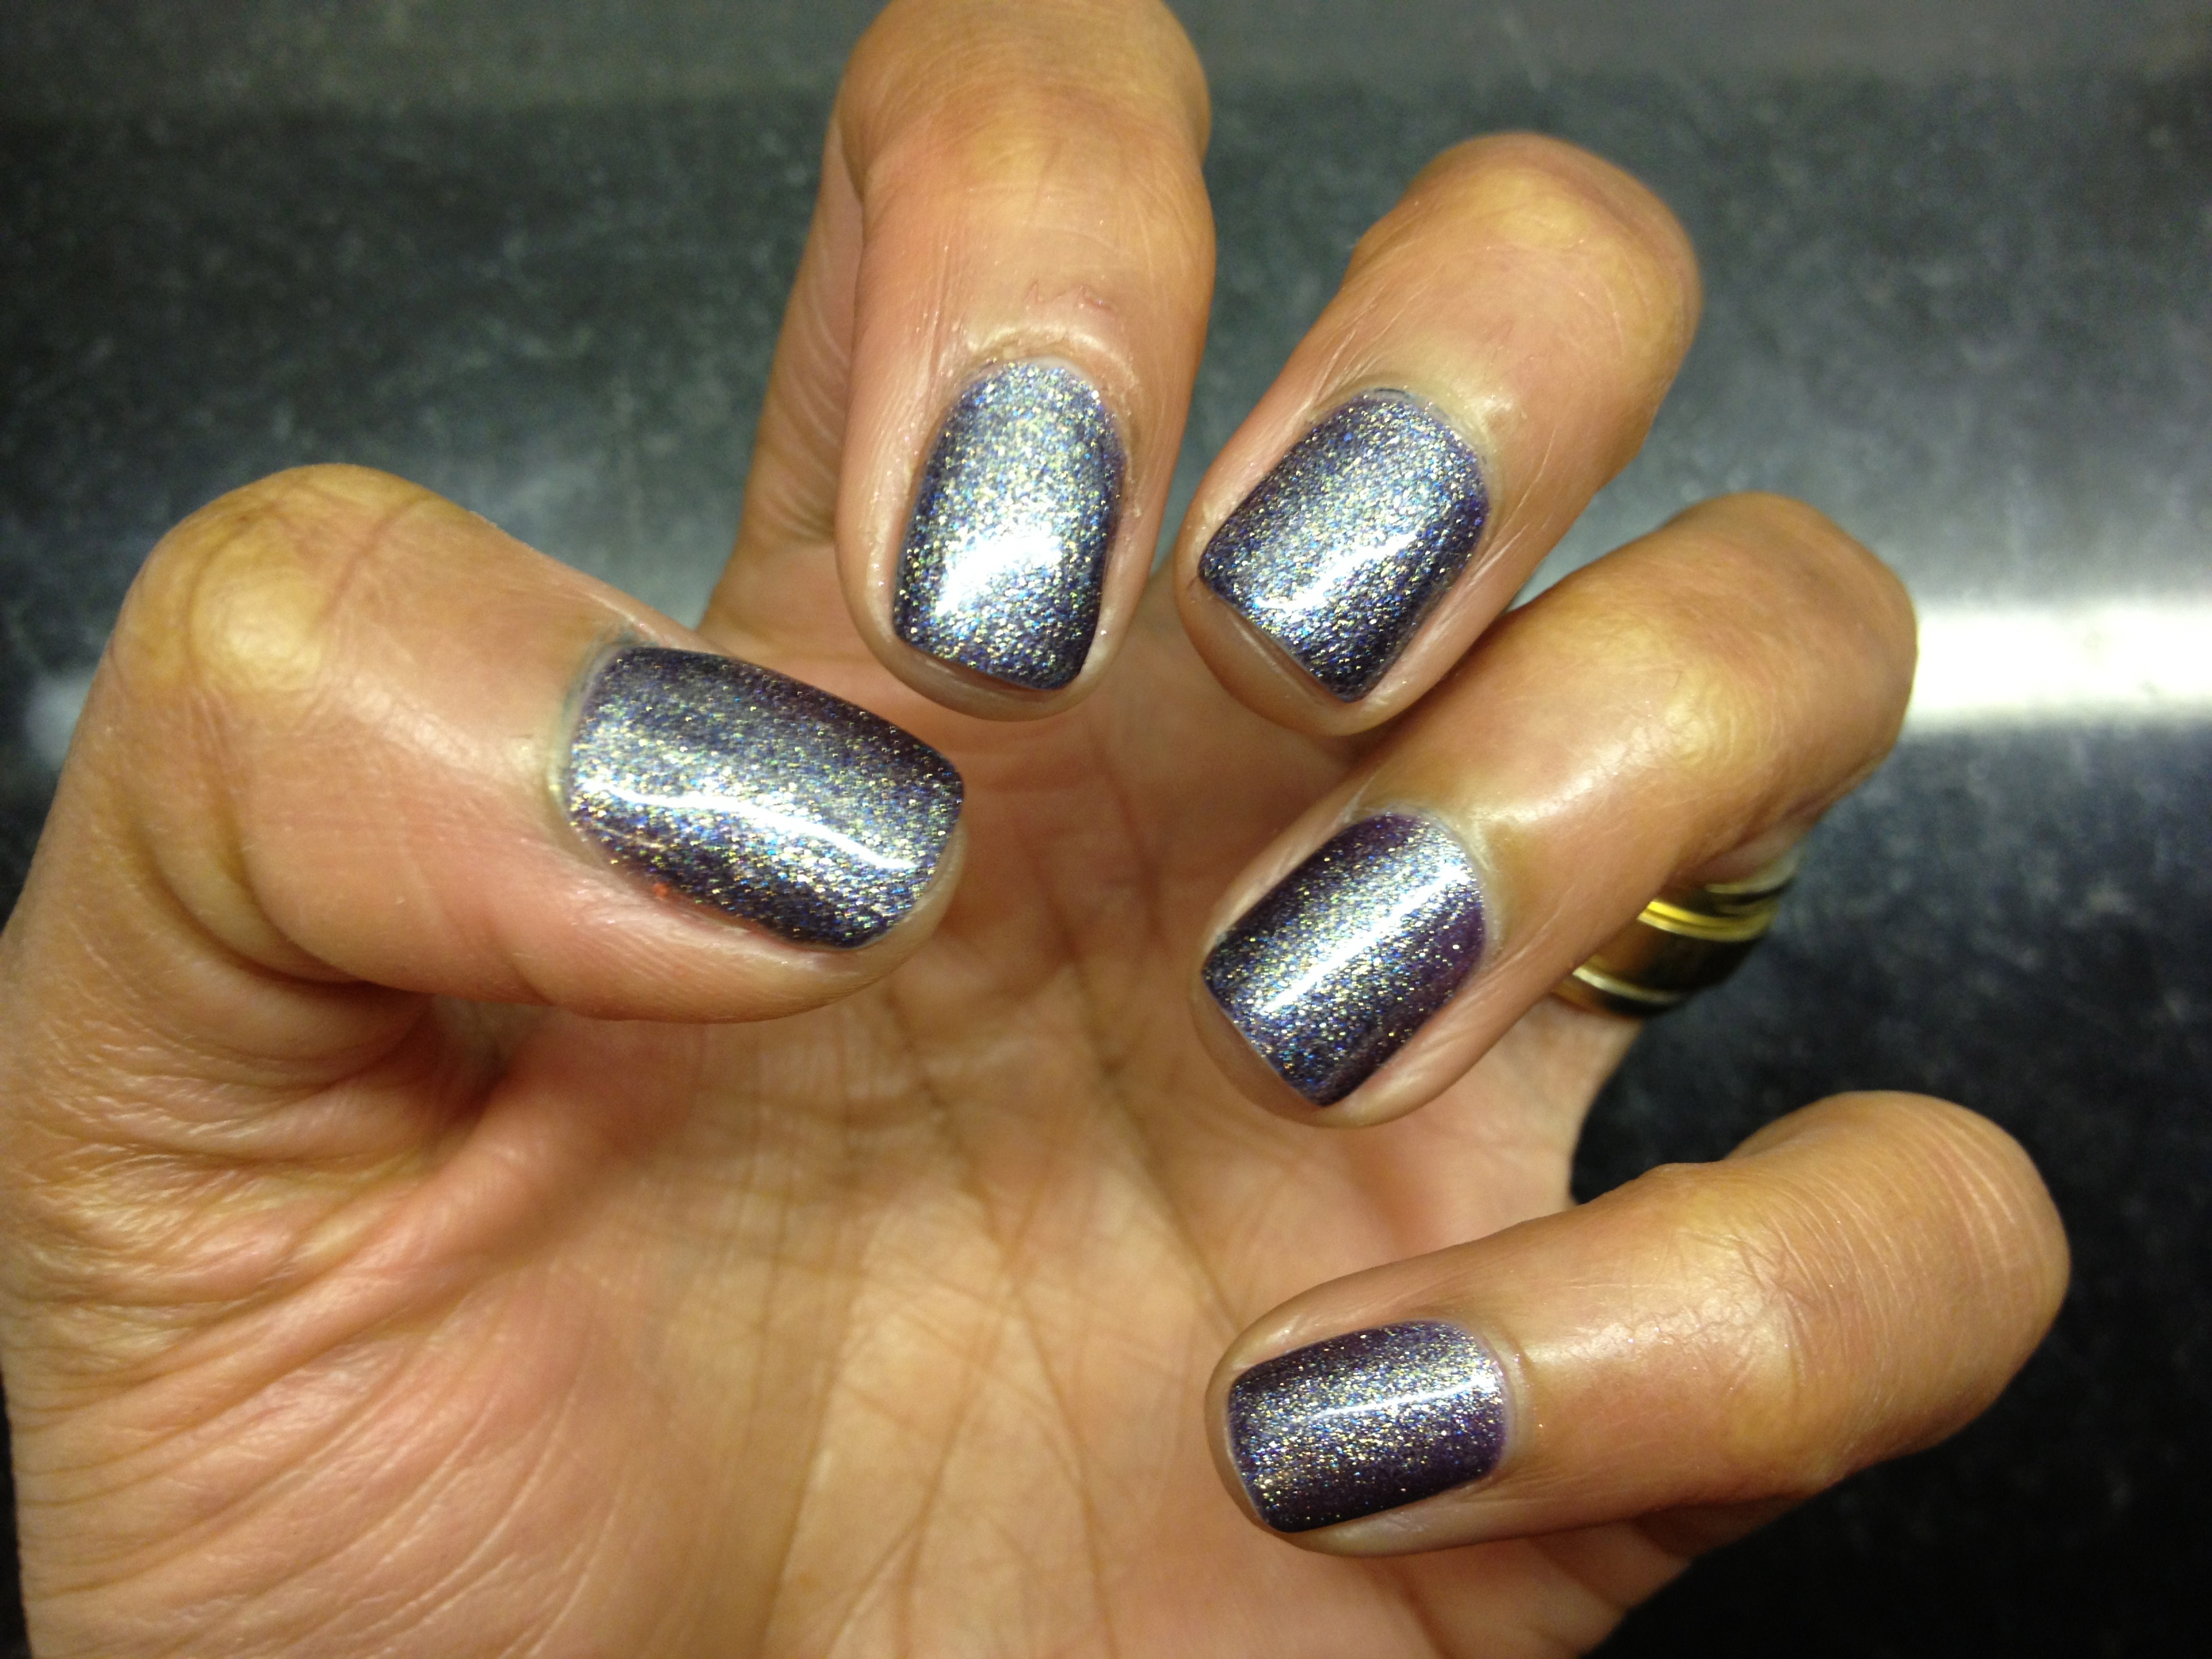 Can You Paint Over Gel Nails With Normal Nail Varnish